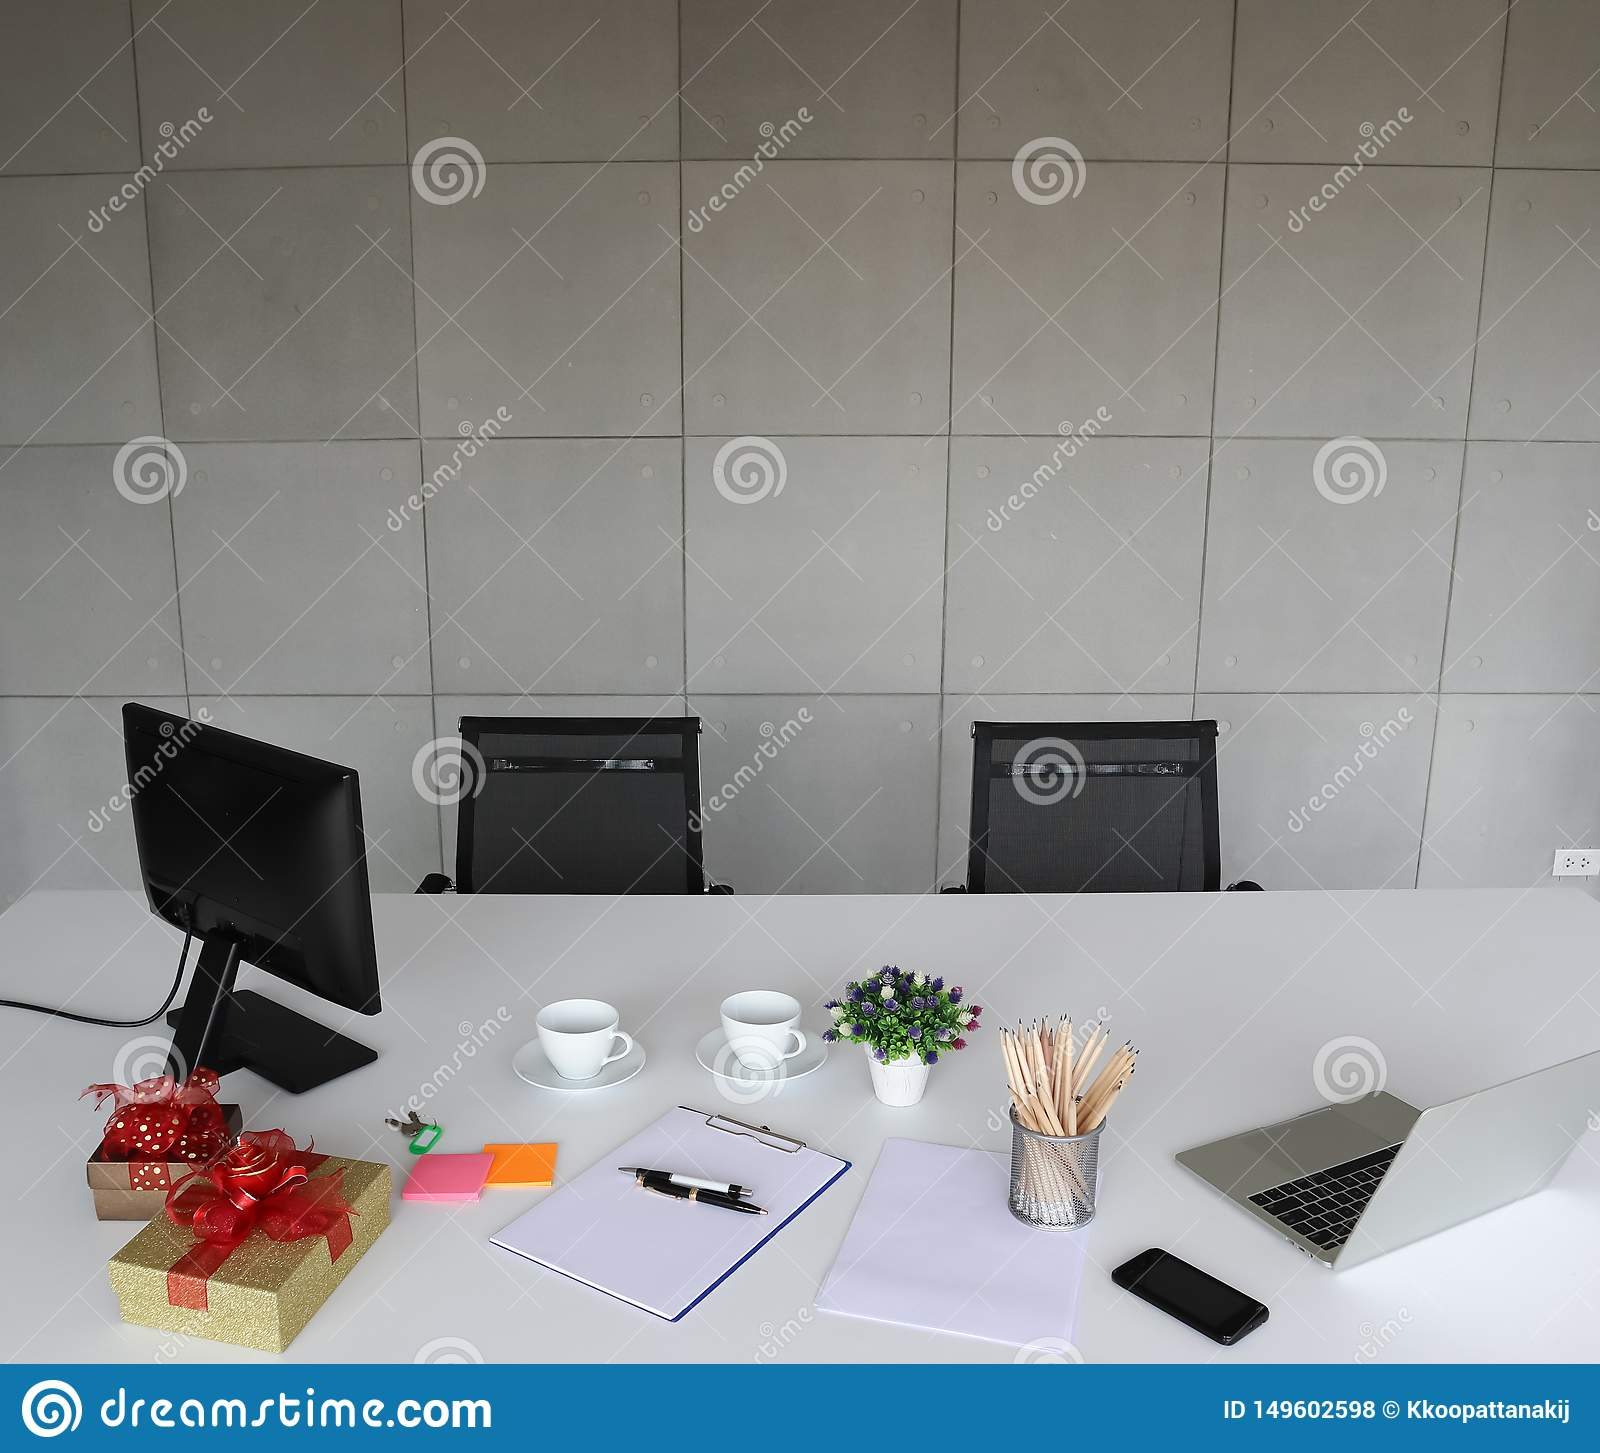 Picture of laptop, mobile phone, pens, pencils, white paper on the white des